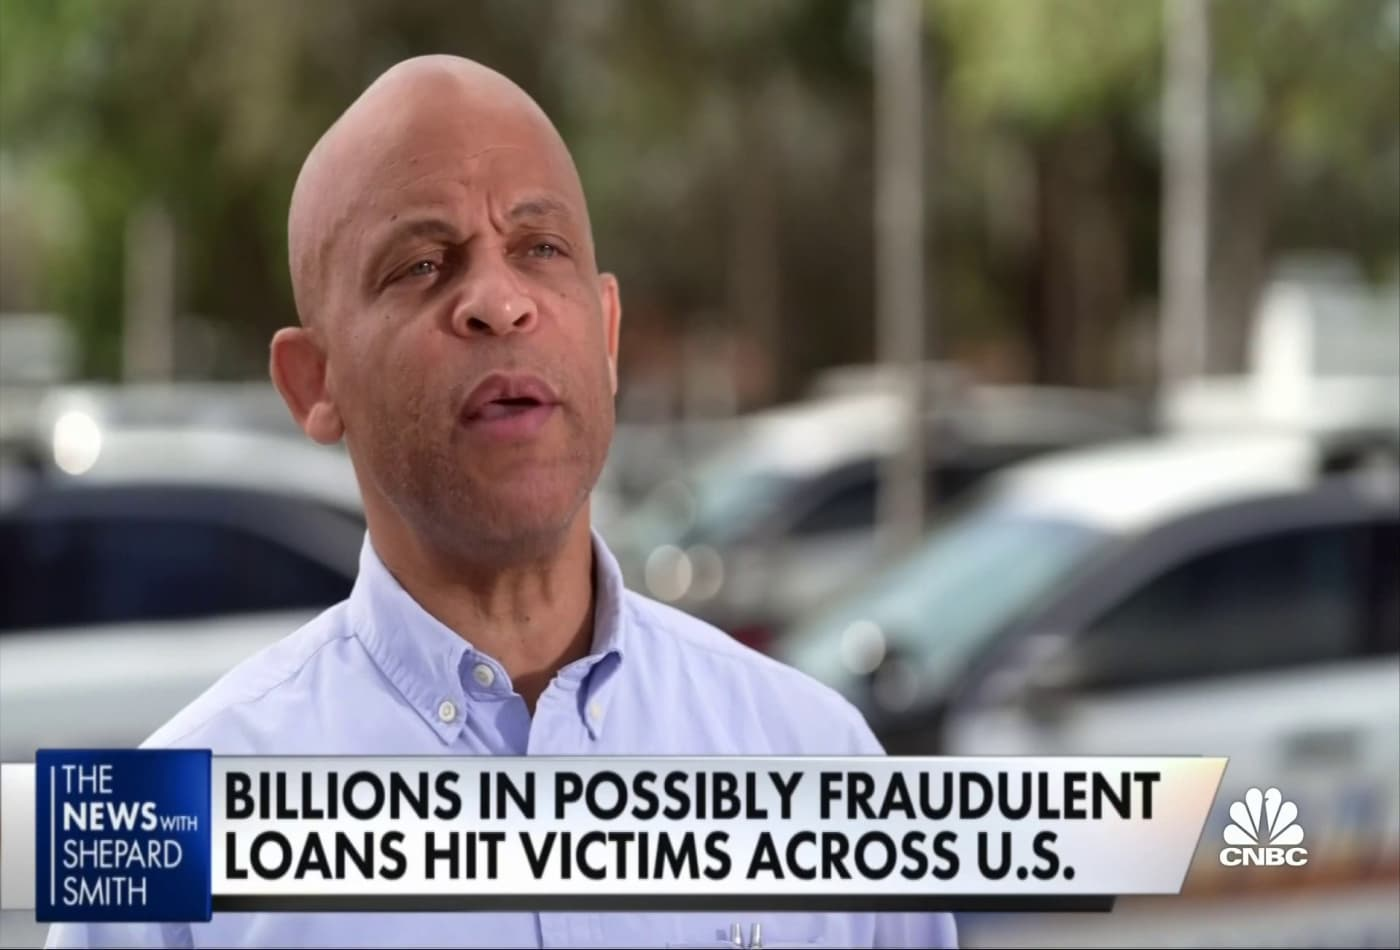 Billions in possibly fraudulent loans hit victims across U.S.